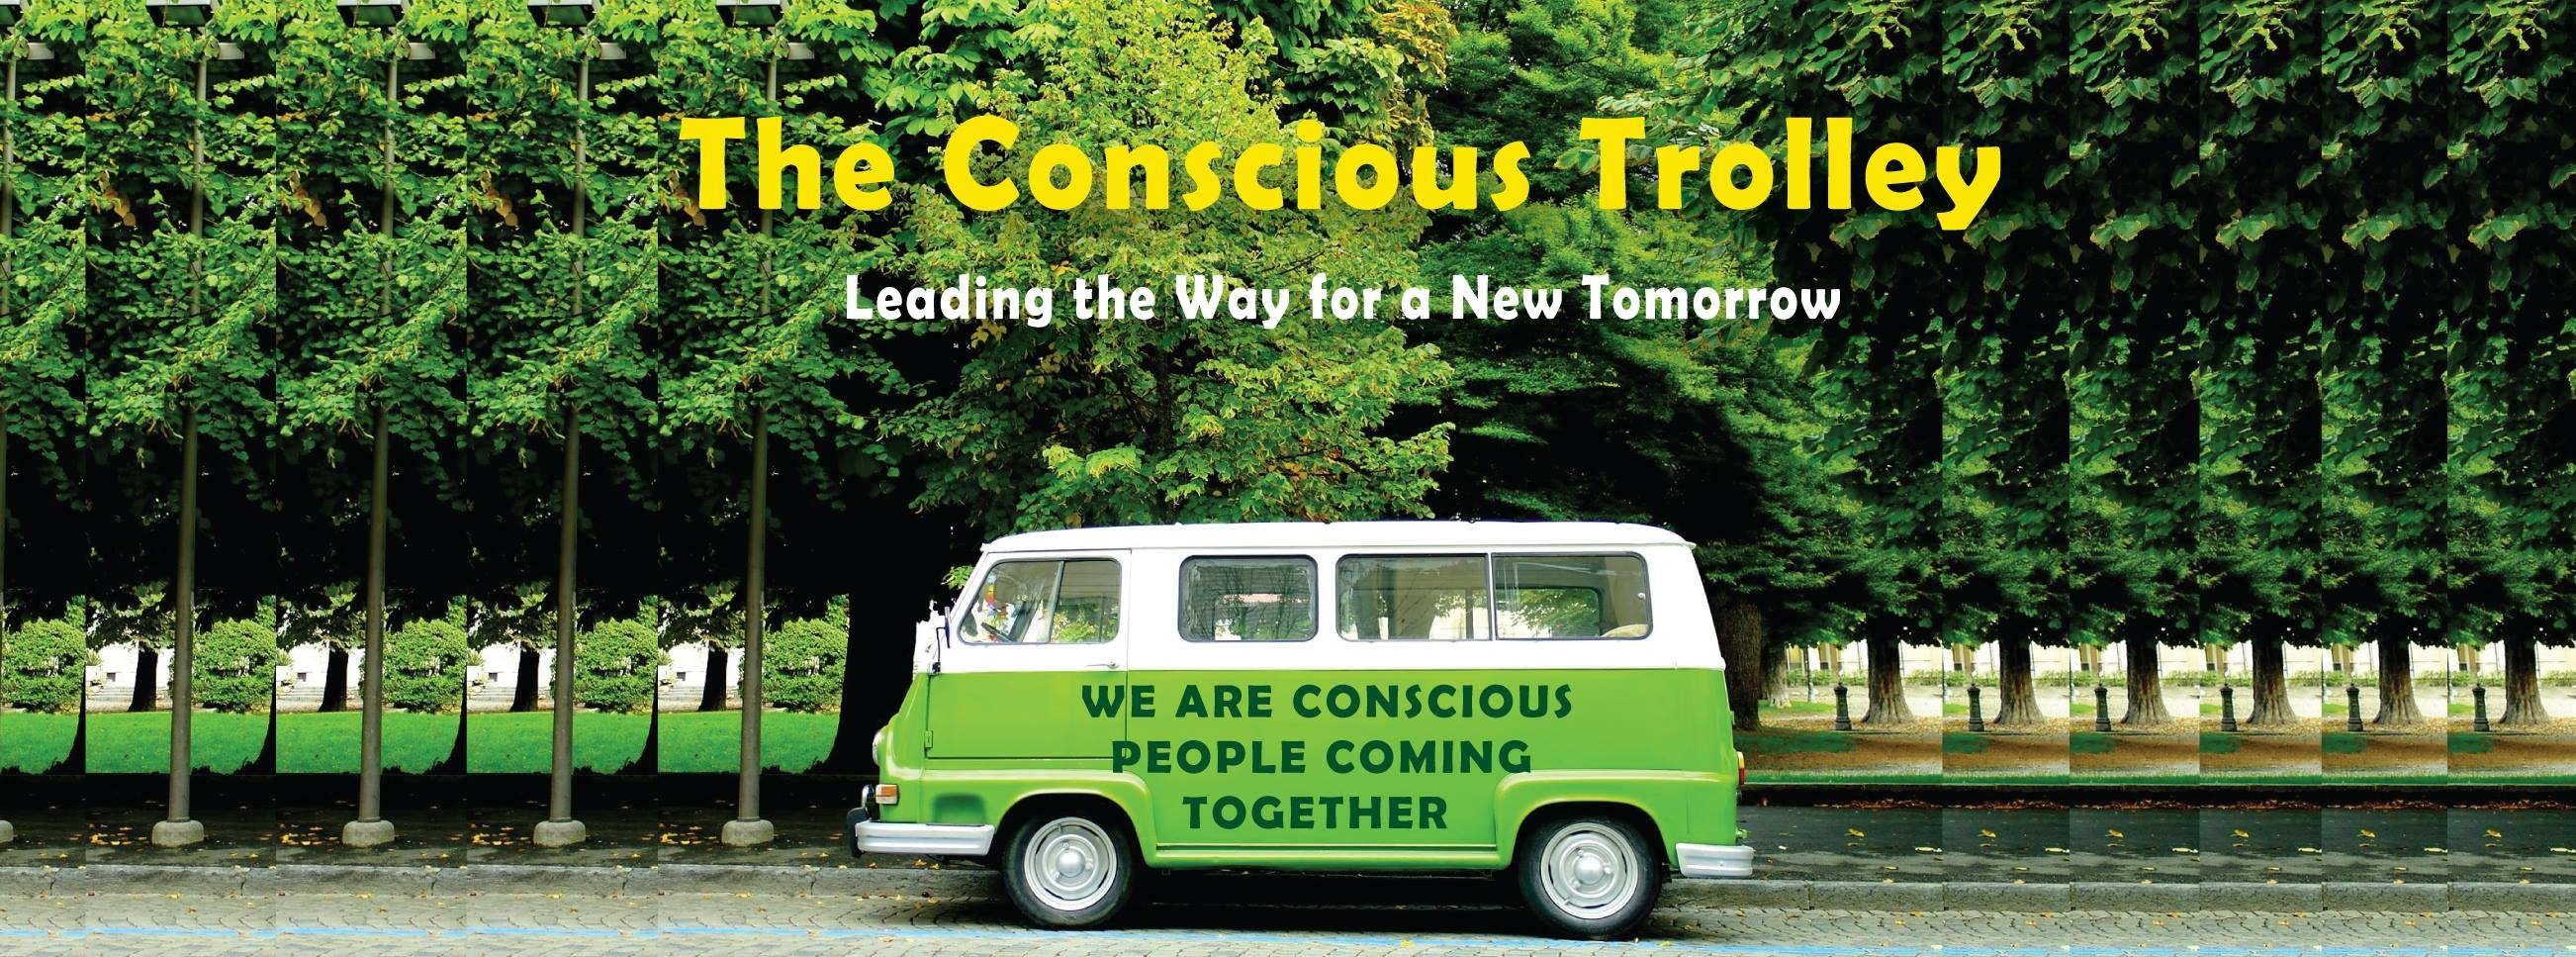 the conscious trolley controlley cyprus startup startups cyprusinno